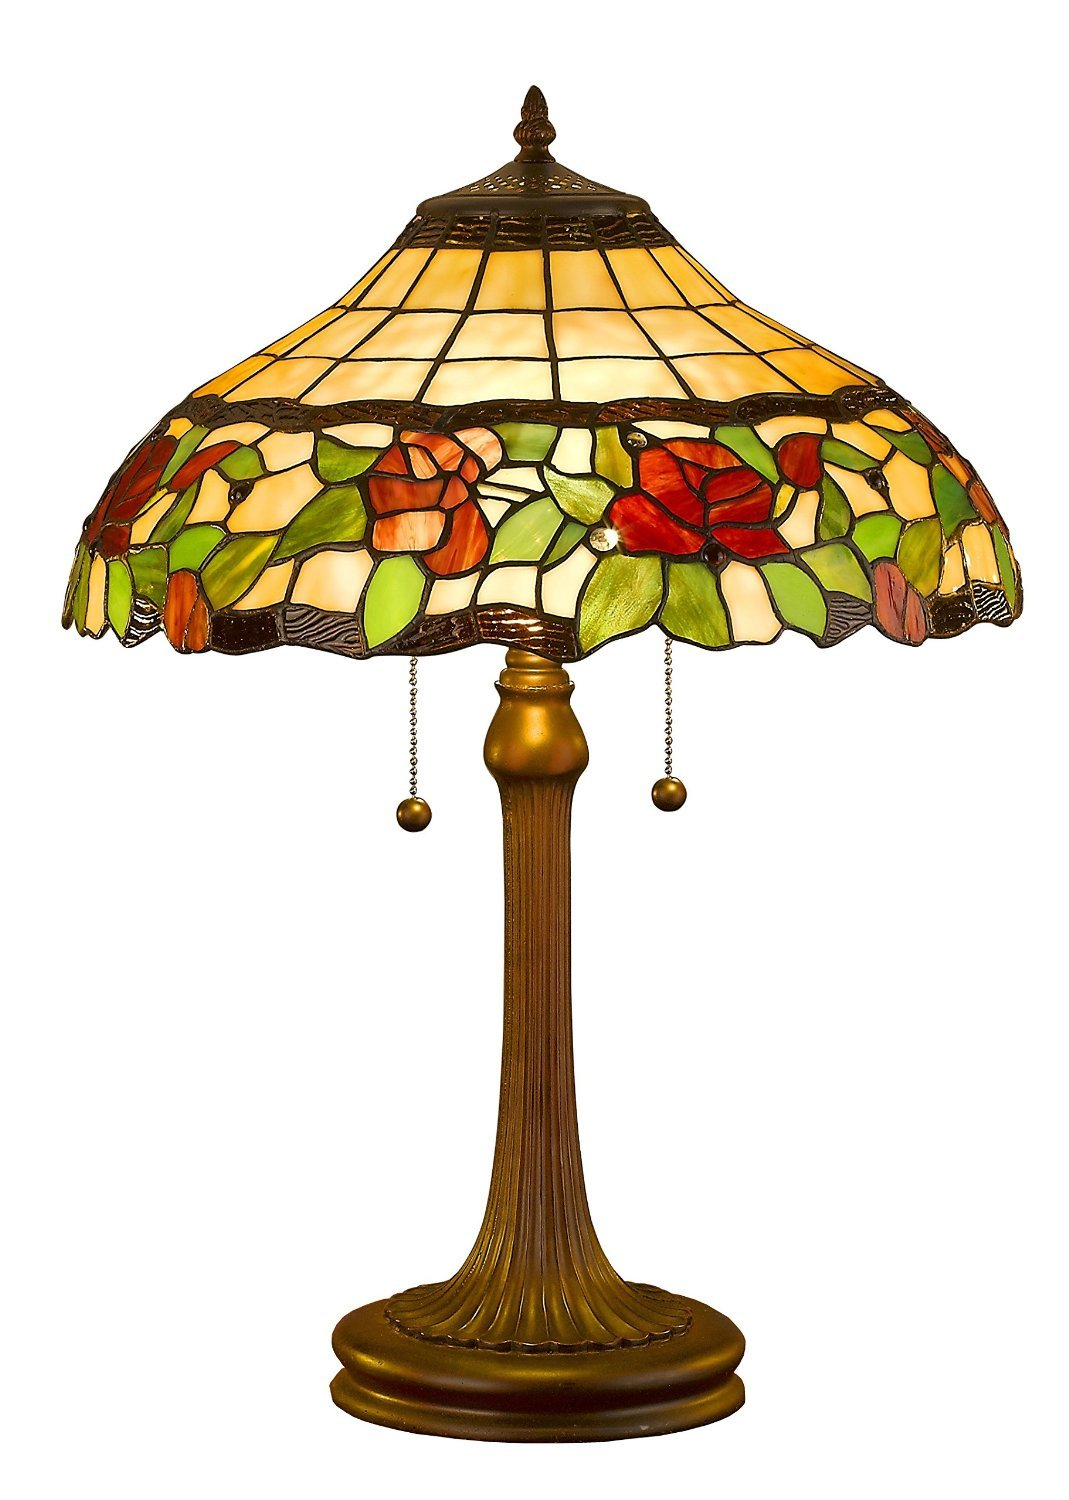 TIFFANY STYLE HAND-CRAFTED FLORAL TABLE LAMP, 23-INCH